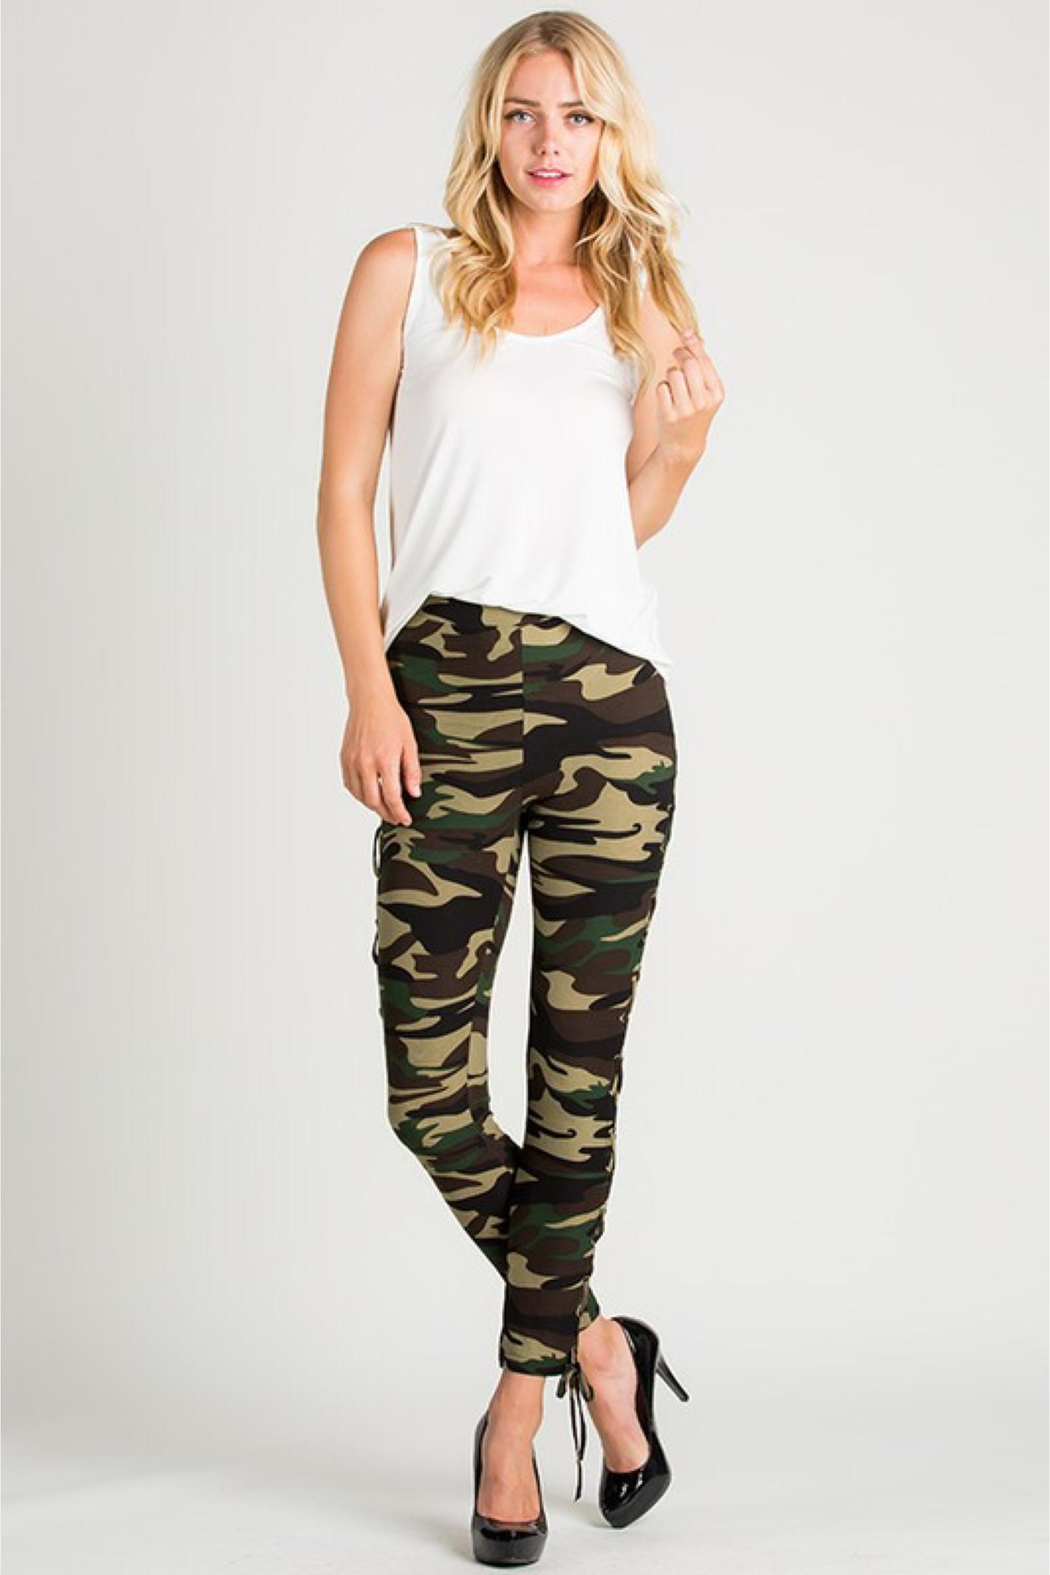 People Outfitter Camouflage Lace-Up Leggings - Main Image